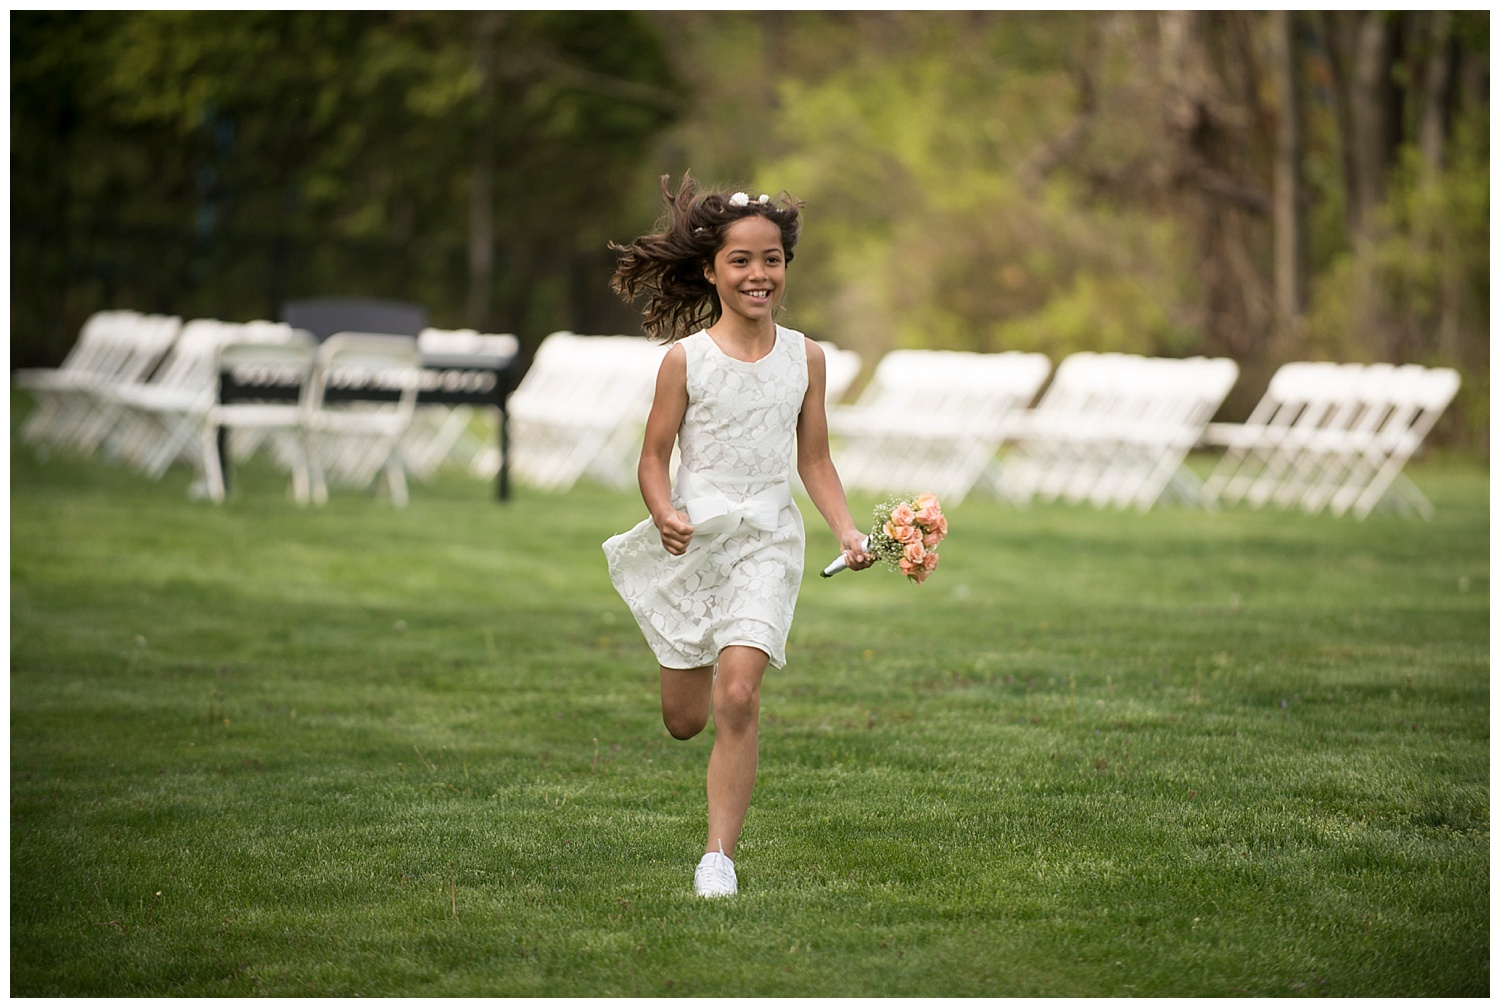 Flower Girl Running | Intimate Wedding Photographer | New York State Wedding Photographer | Farm Wedding Photographer | Apollo Fields Wedding Photojournalism